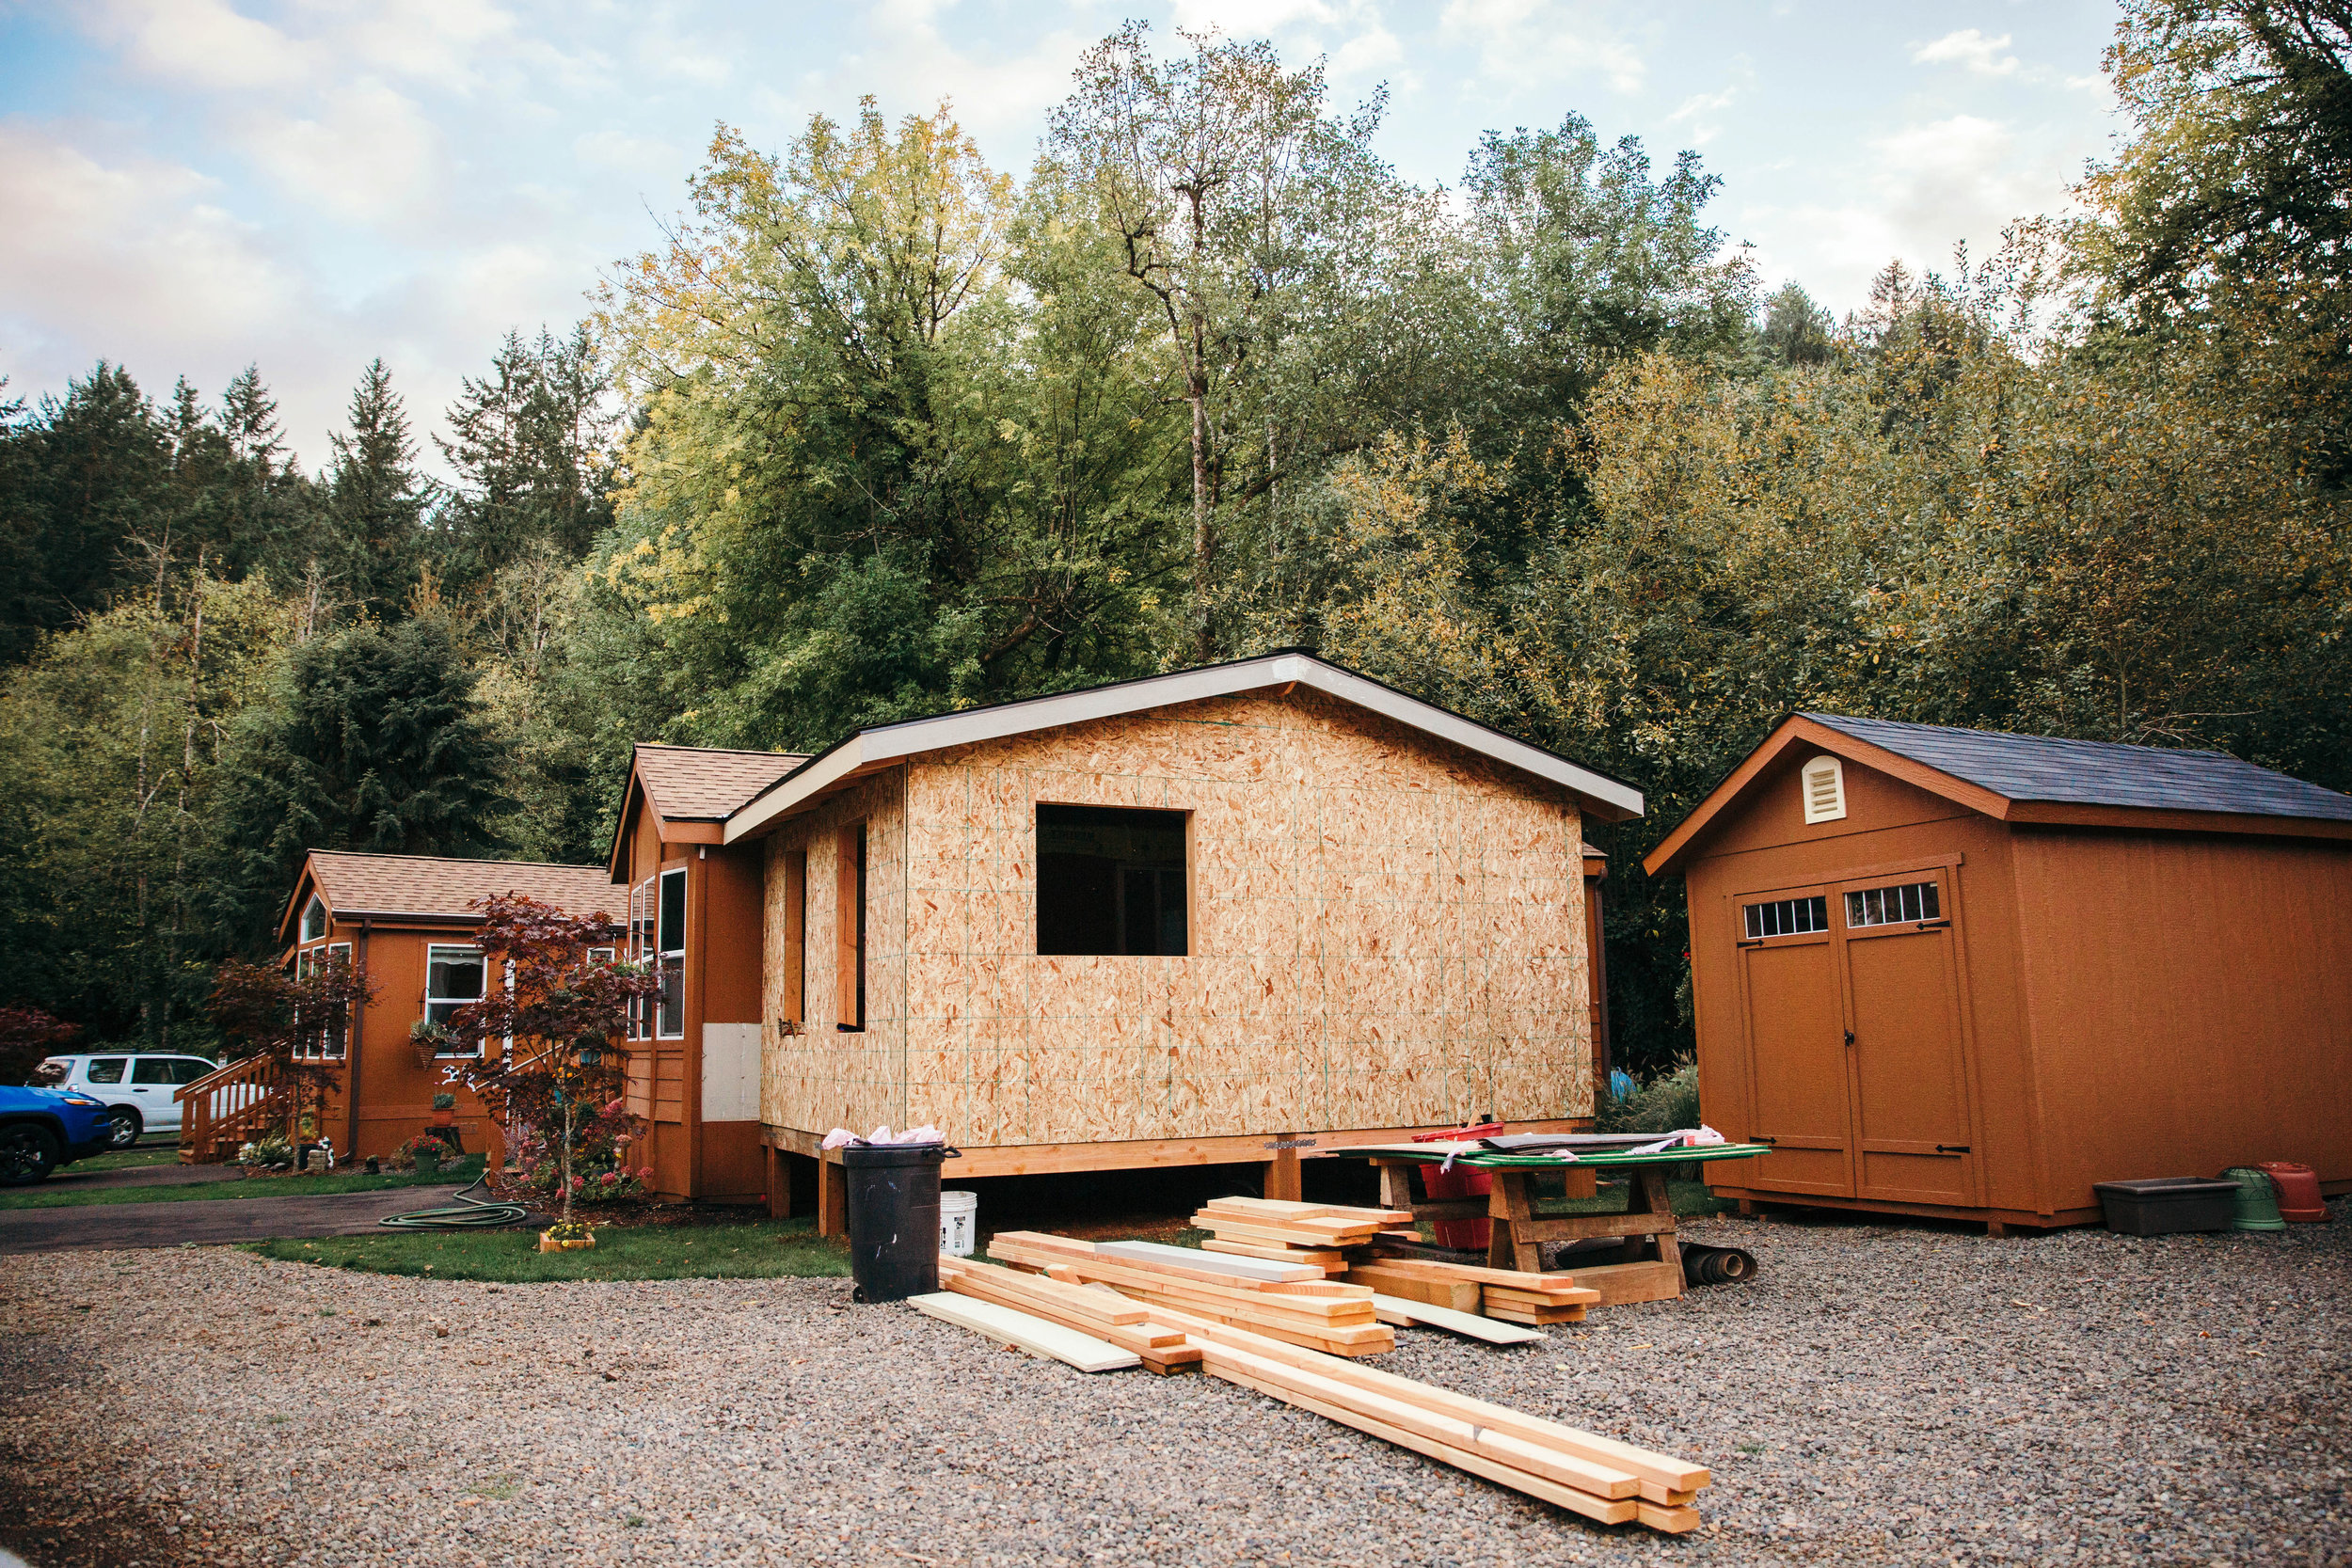 House Under-Construction with Wooden Planks Beside It